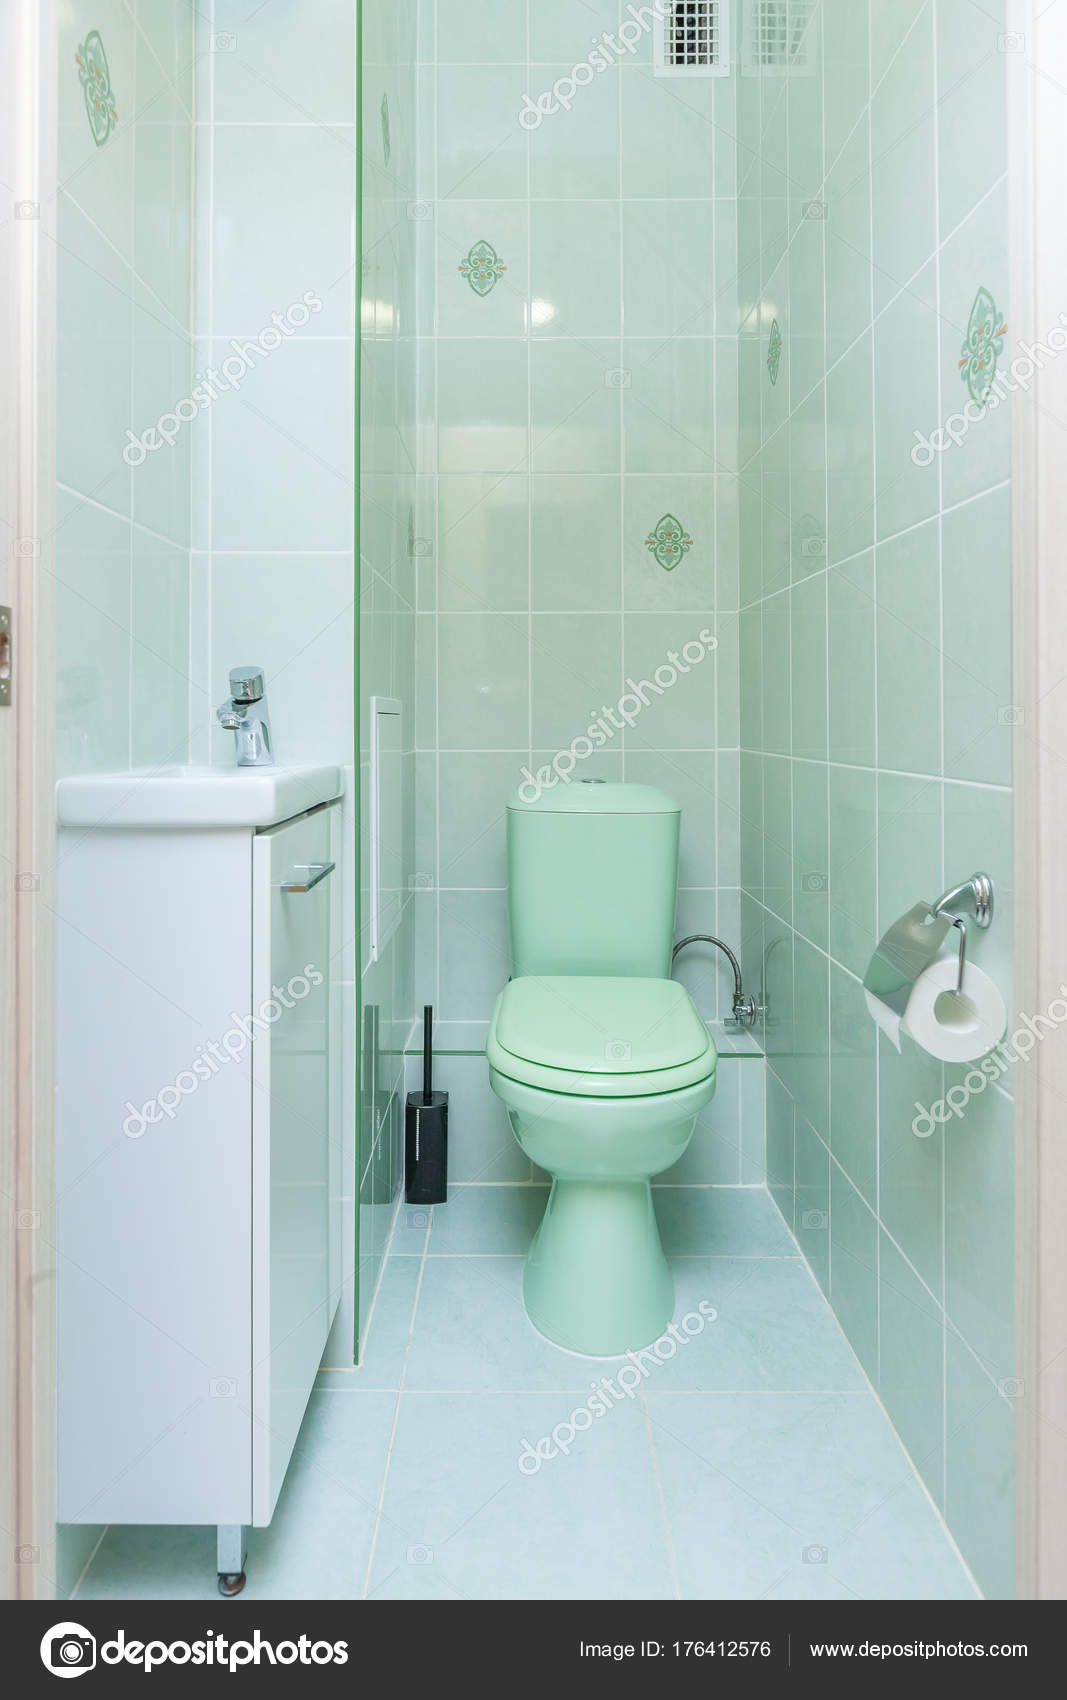 Restroom with toilet — Stock Photo © olgasweet #176412576